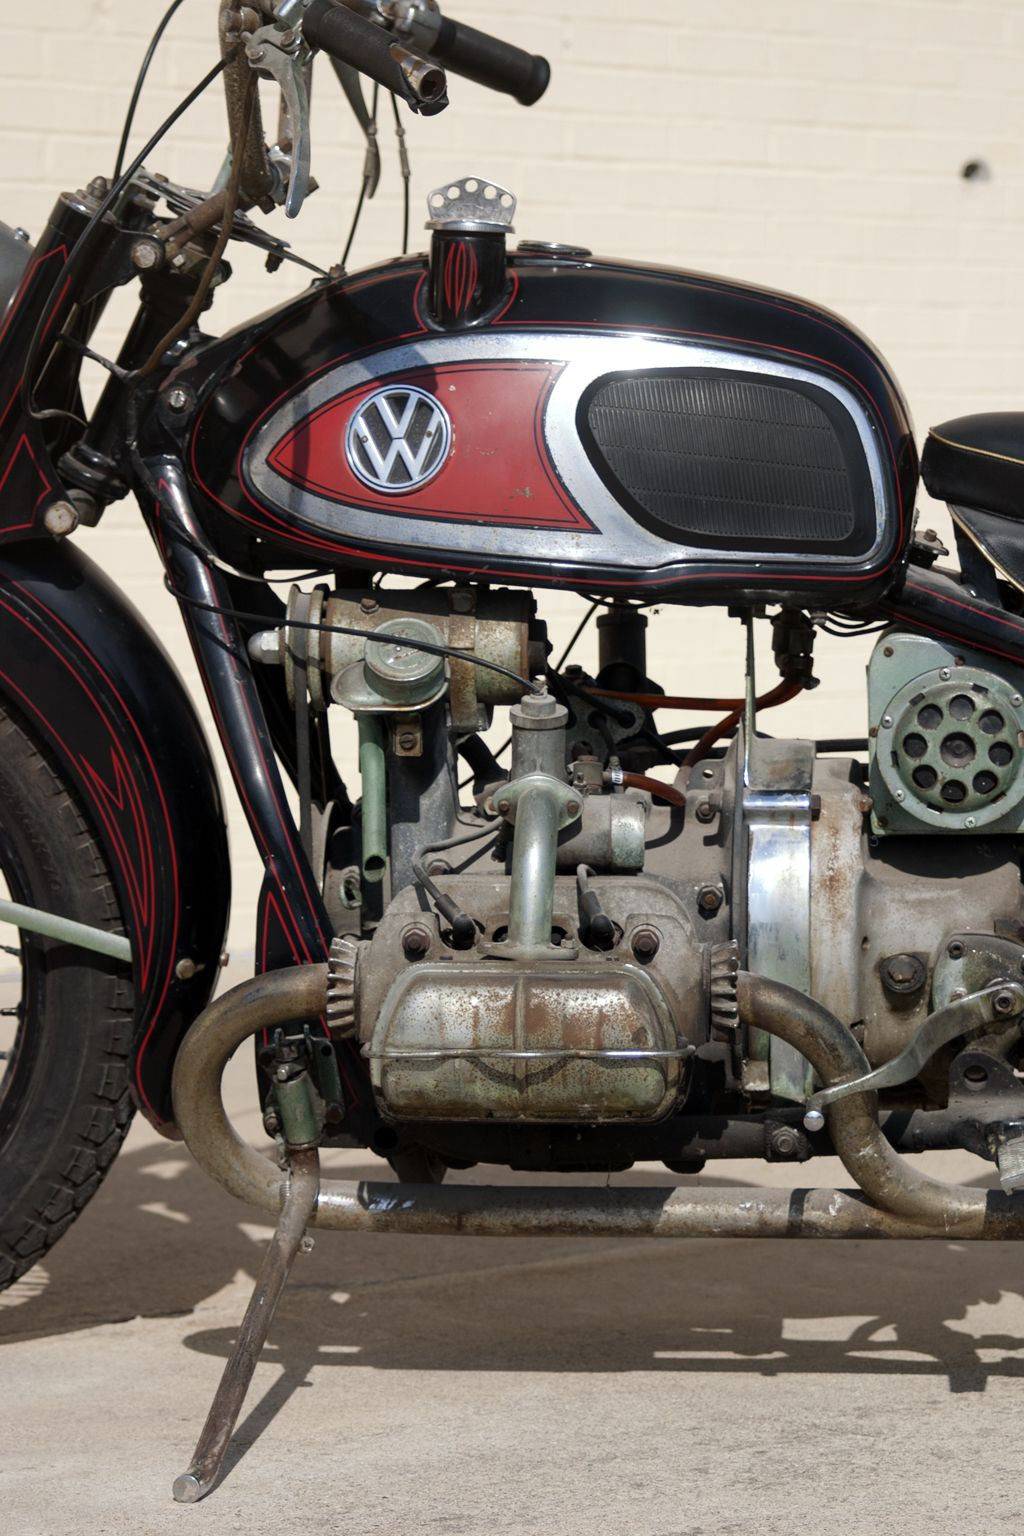 Von Dutch Xavw Volkswagen Motorcycle Owned By Mike Wolfe Of American